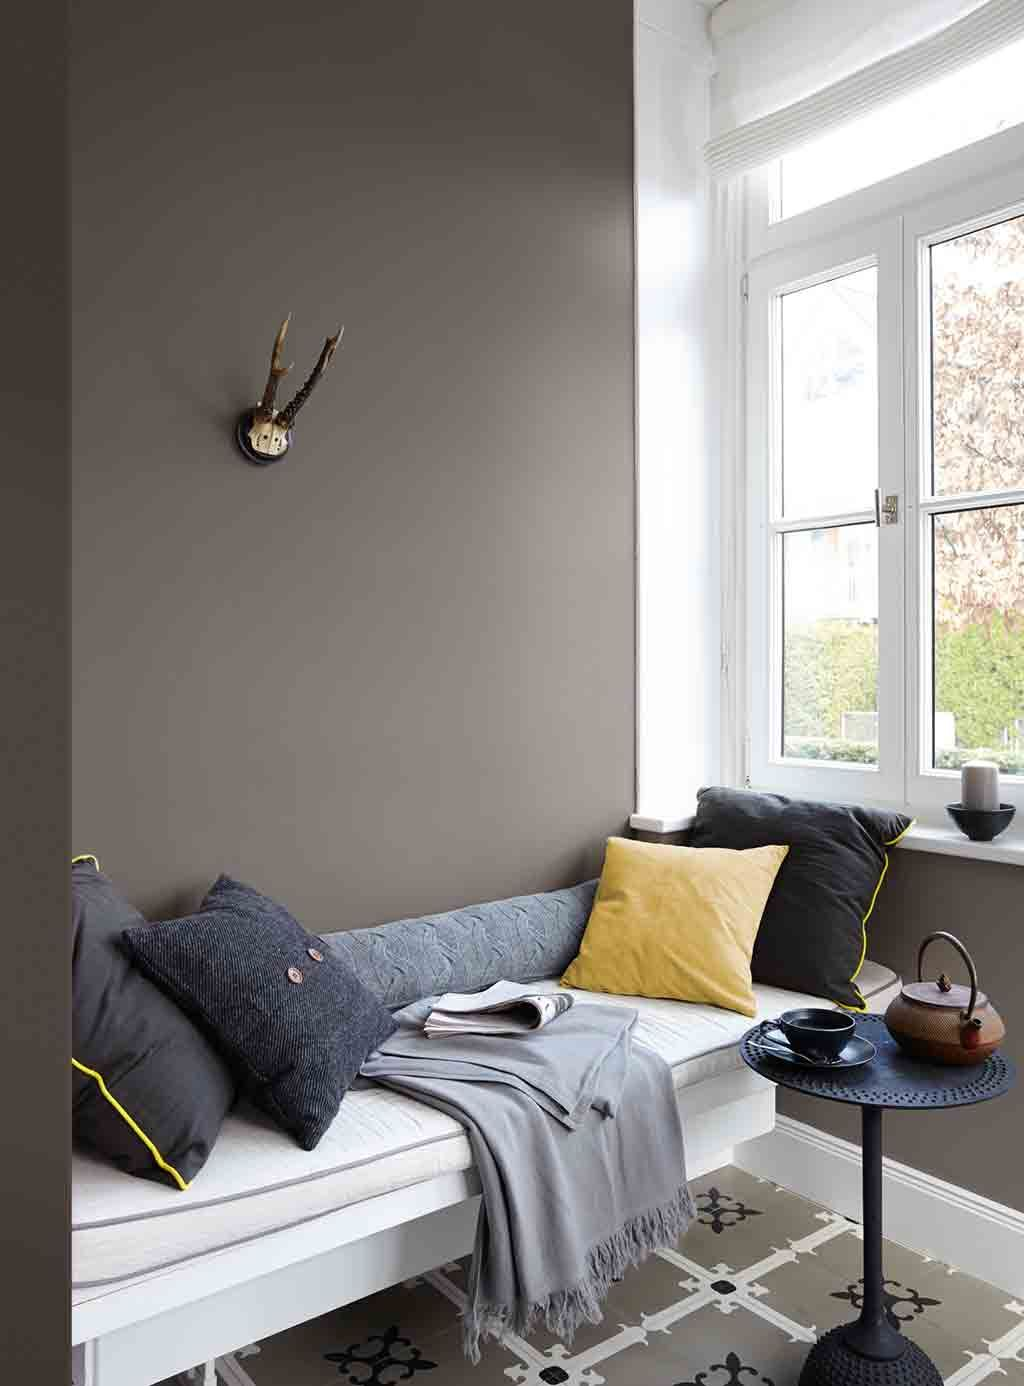 graue wand im ladhausstil alpina feine farben no 01 st rke der berge wandfarben pinterest. Black Bedroom Furniture Sets. Home Design Ideas